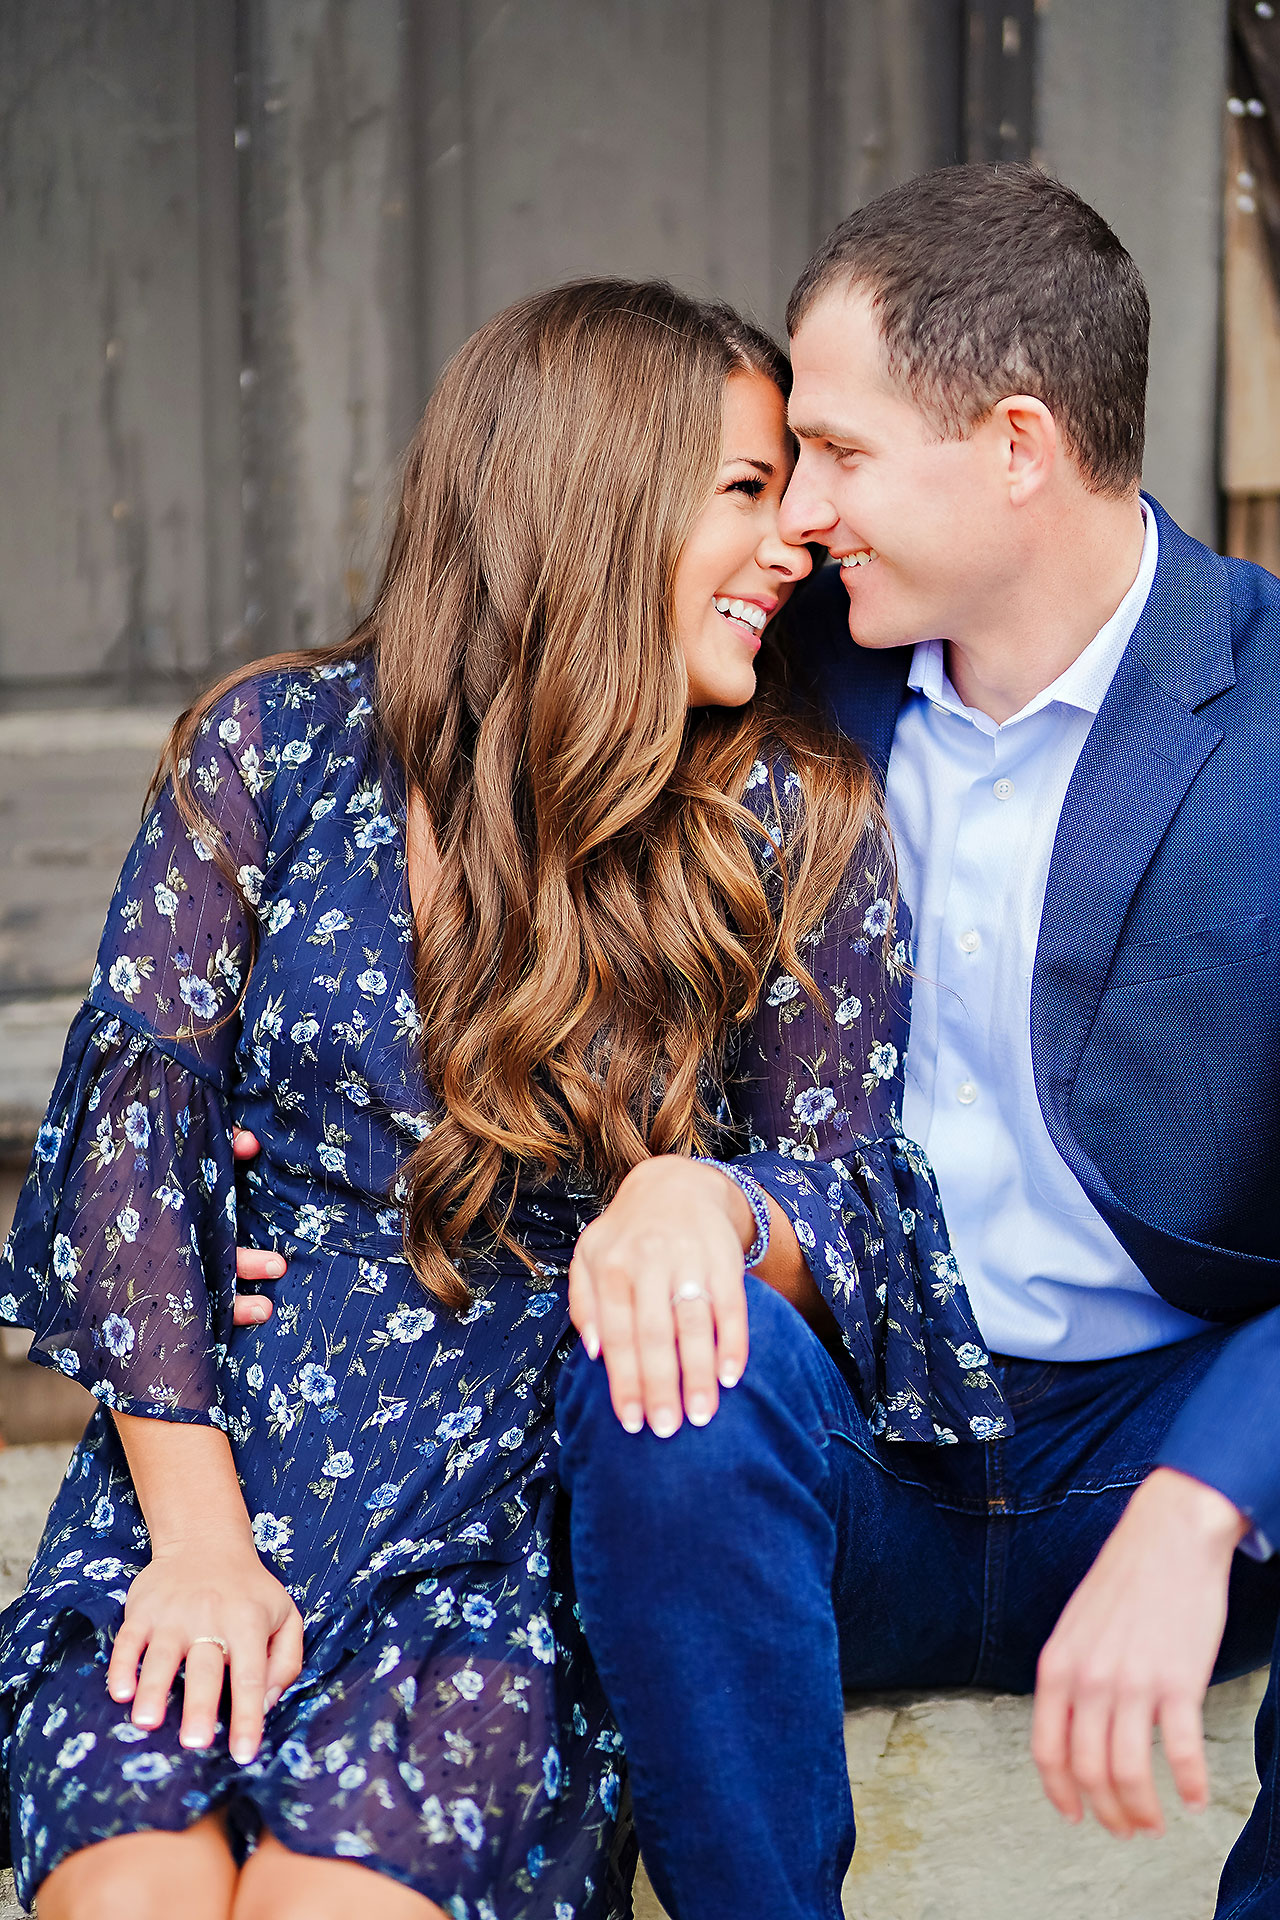 Sarah Andrew Holcomb Gardens Zionsville Engagement Session 081